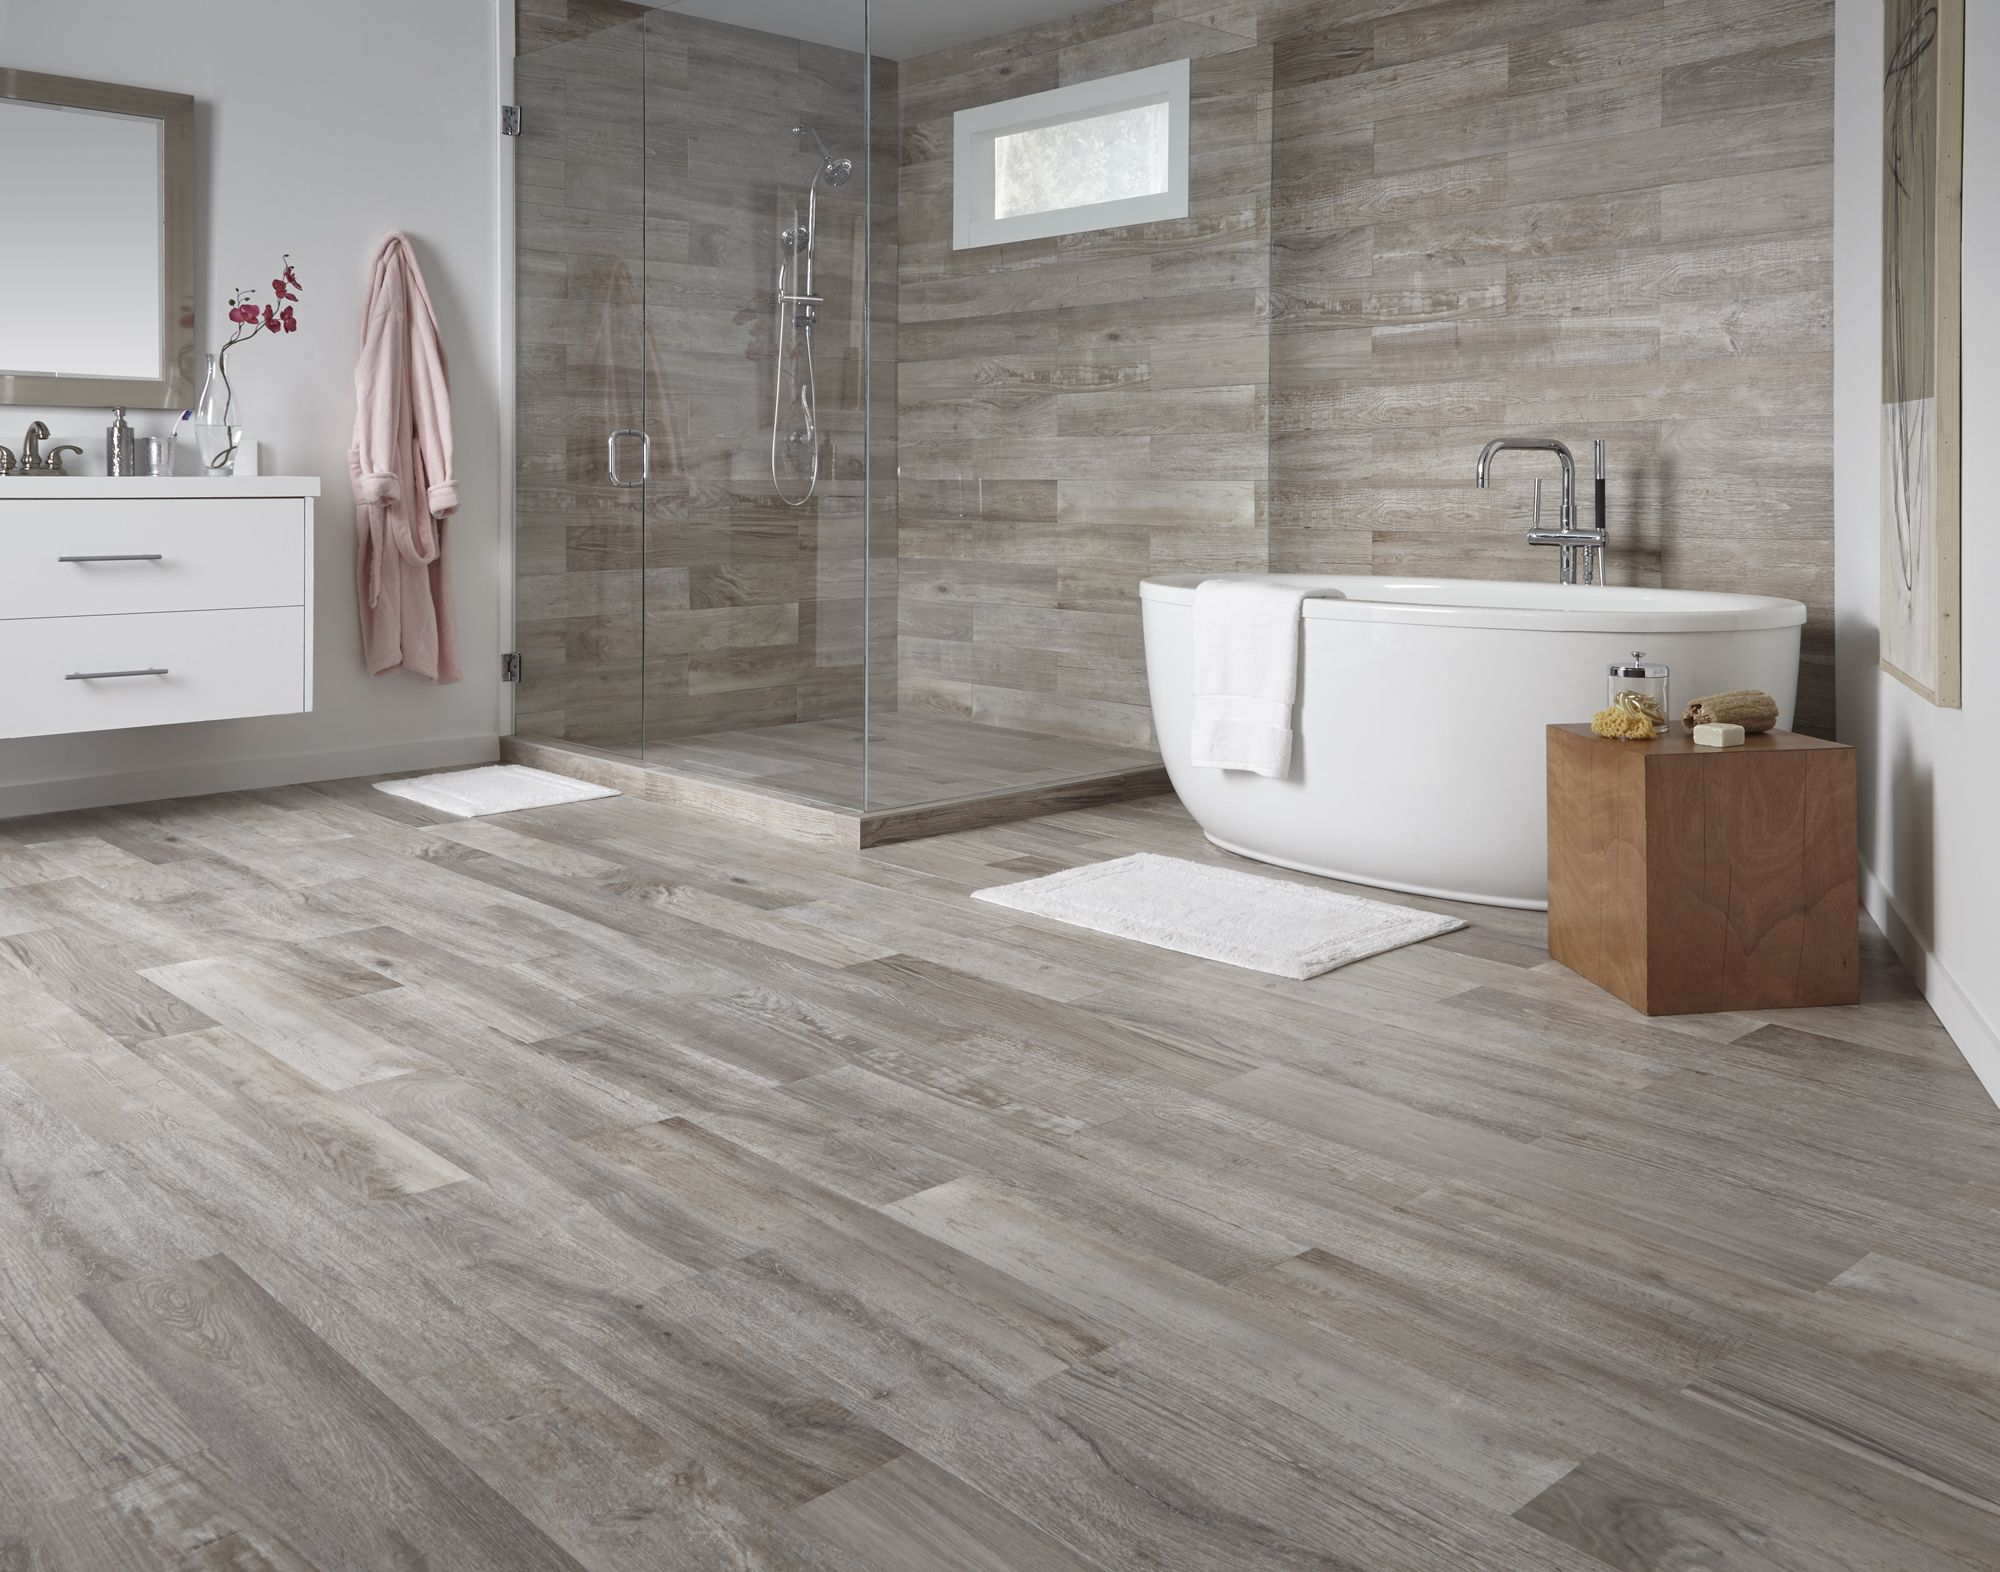 Sun Washed Beige Light Brown Tones With A Weathered Like Finish Waterproof Farina Bay Oak Wood Loo Wood Tile Bathroom Wood Look Tile Bathroom Grey Wood Tile